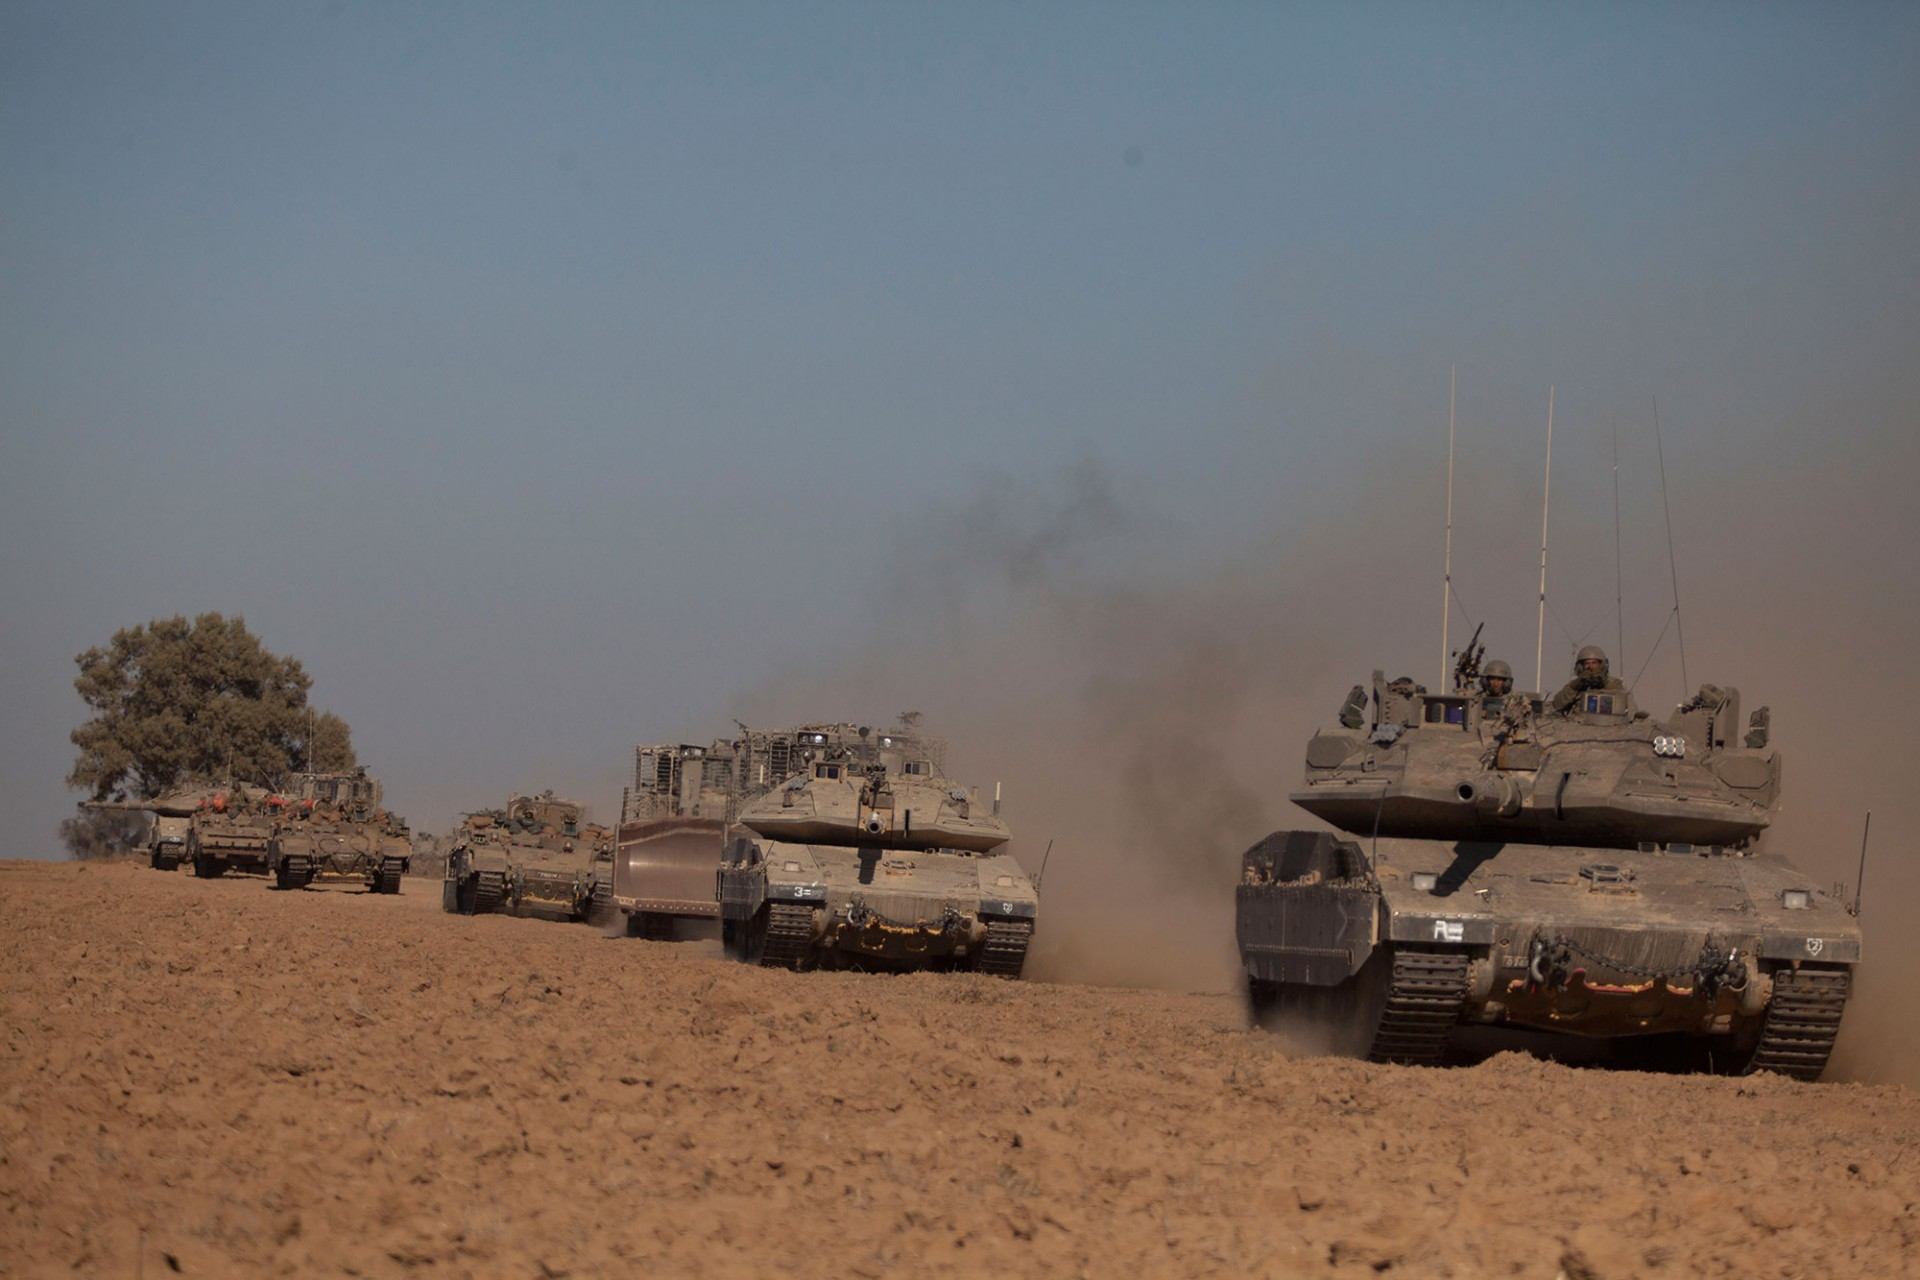 Israeli tanks seen moving along the border with Gaza on July 17, 2014 on Israel's border with the Gaza Strip.